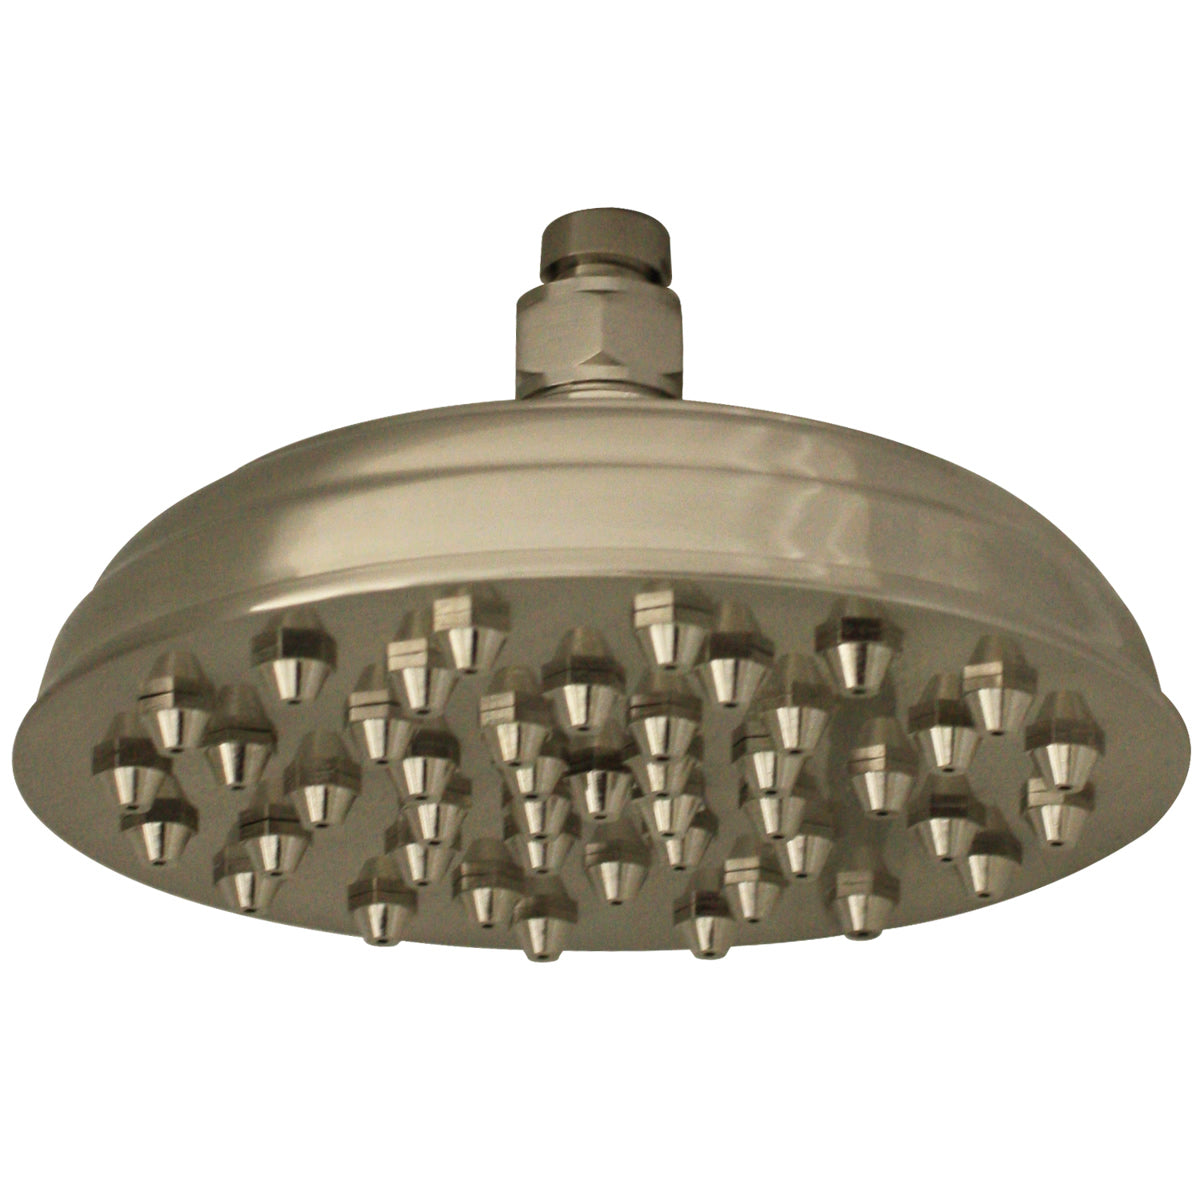 Whitehaus Showerhaus Sunflower Rainfall Showerhead with 45 nozzles - Solid Brass Construction with Adjustable Ball Joint